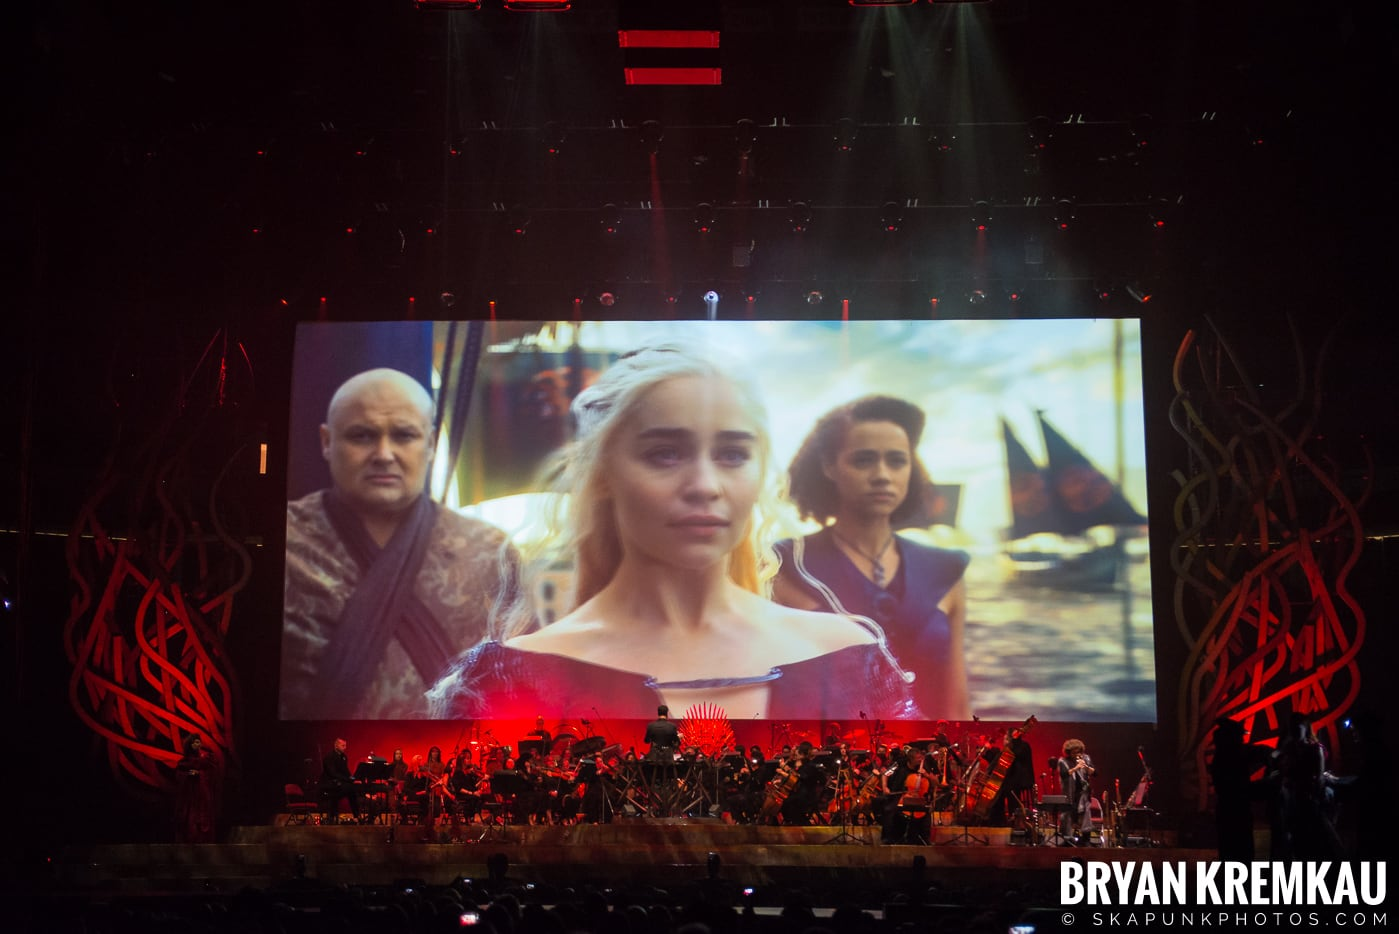 Game of Thrones Live Experience @ Prudential Center, Newark, NJ - 9.26.18 (22)